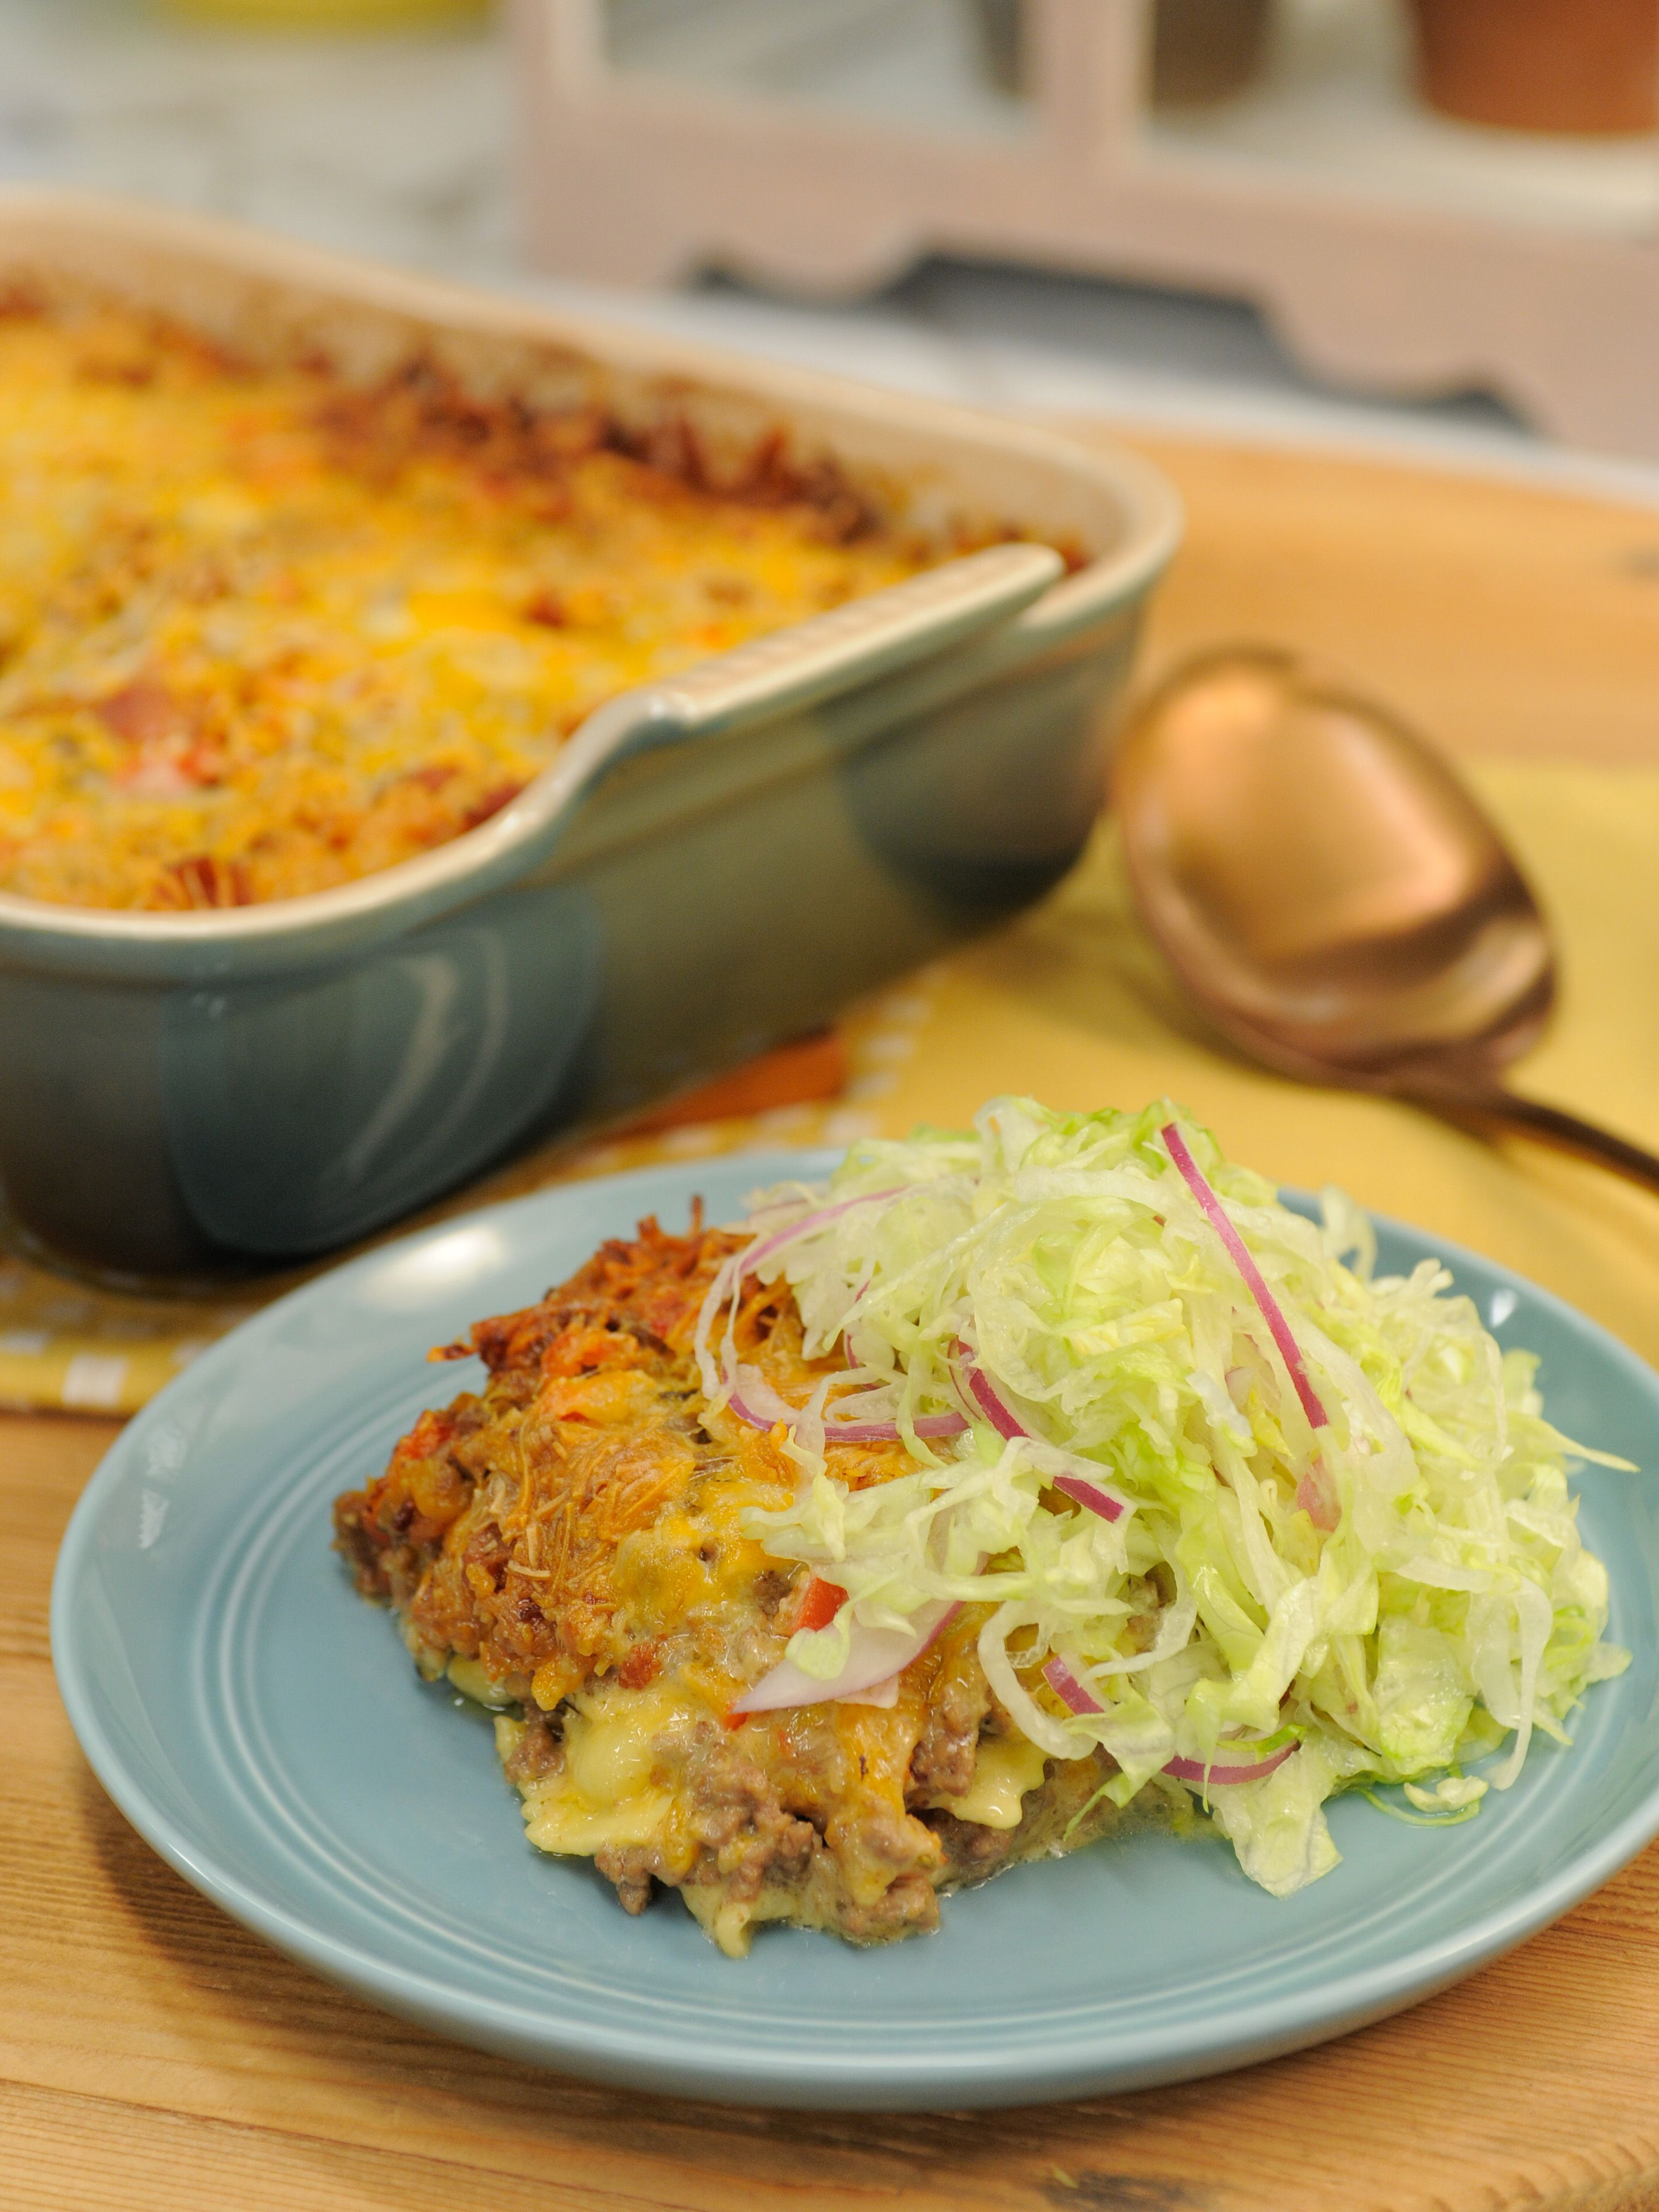 Sunny S Bacon Cheeseburger Casserole Recipe Food Network Recipes Cheeseburger Casserole Bacon Cheeseburger Casserole